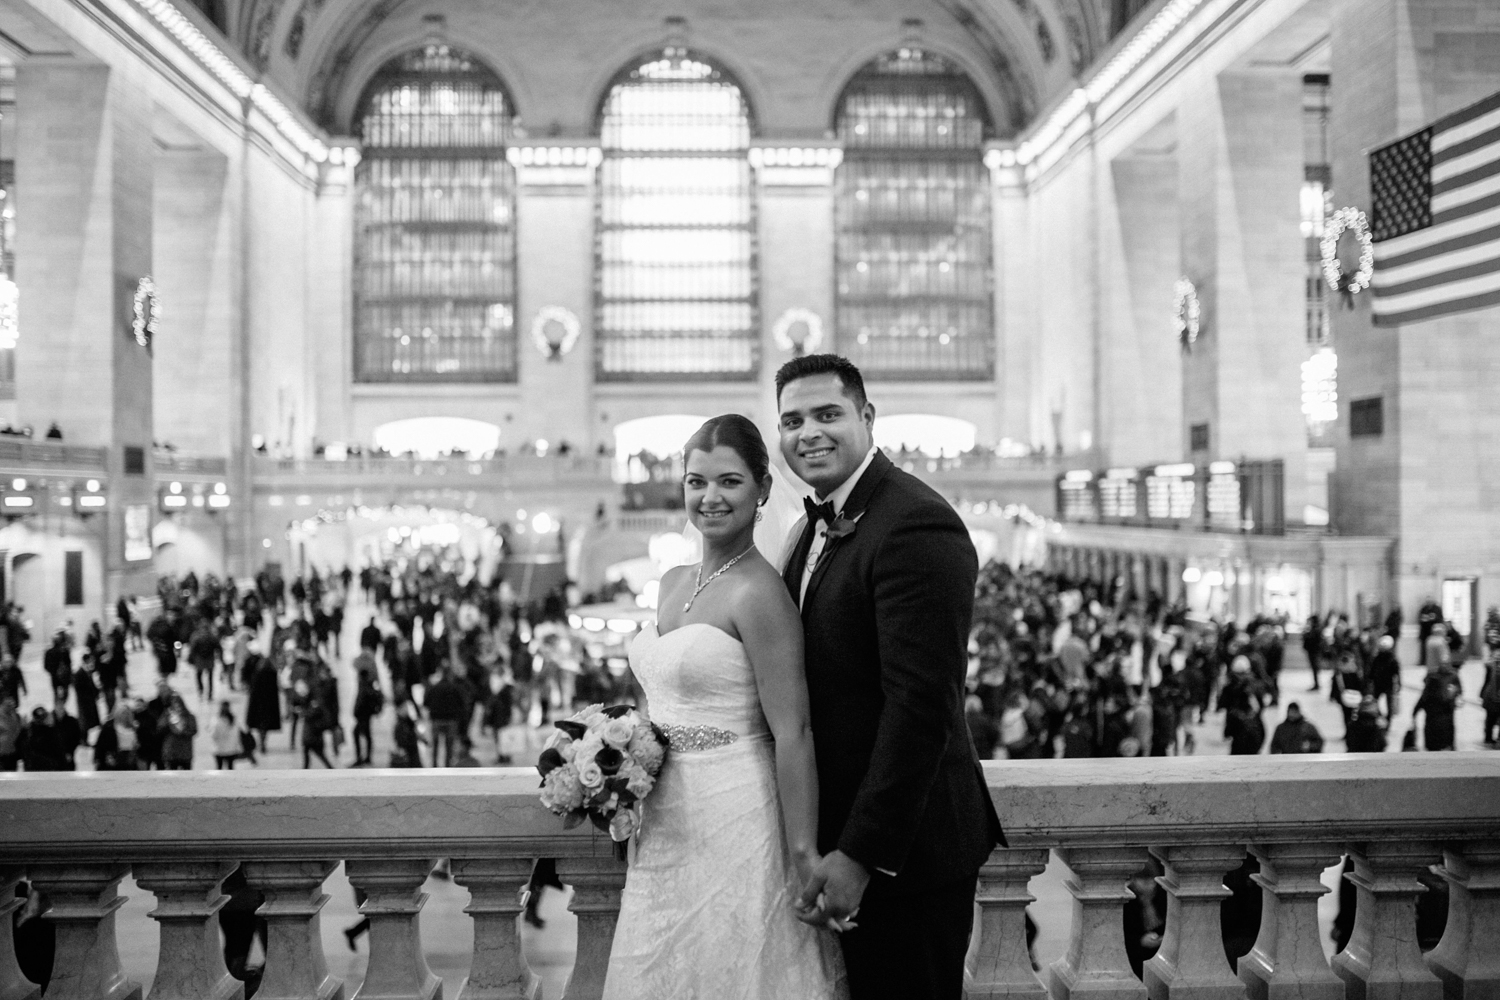 Black and white portrait at grand central station